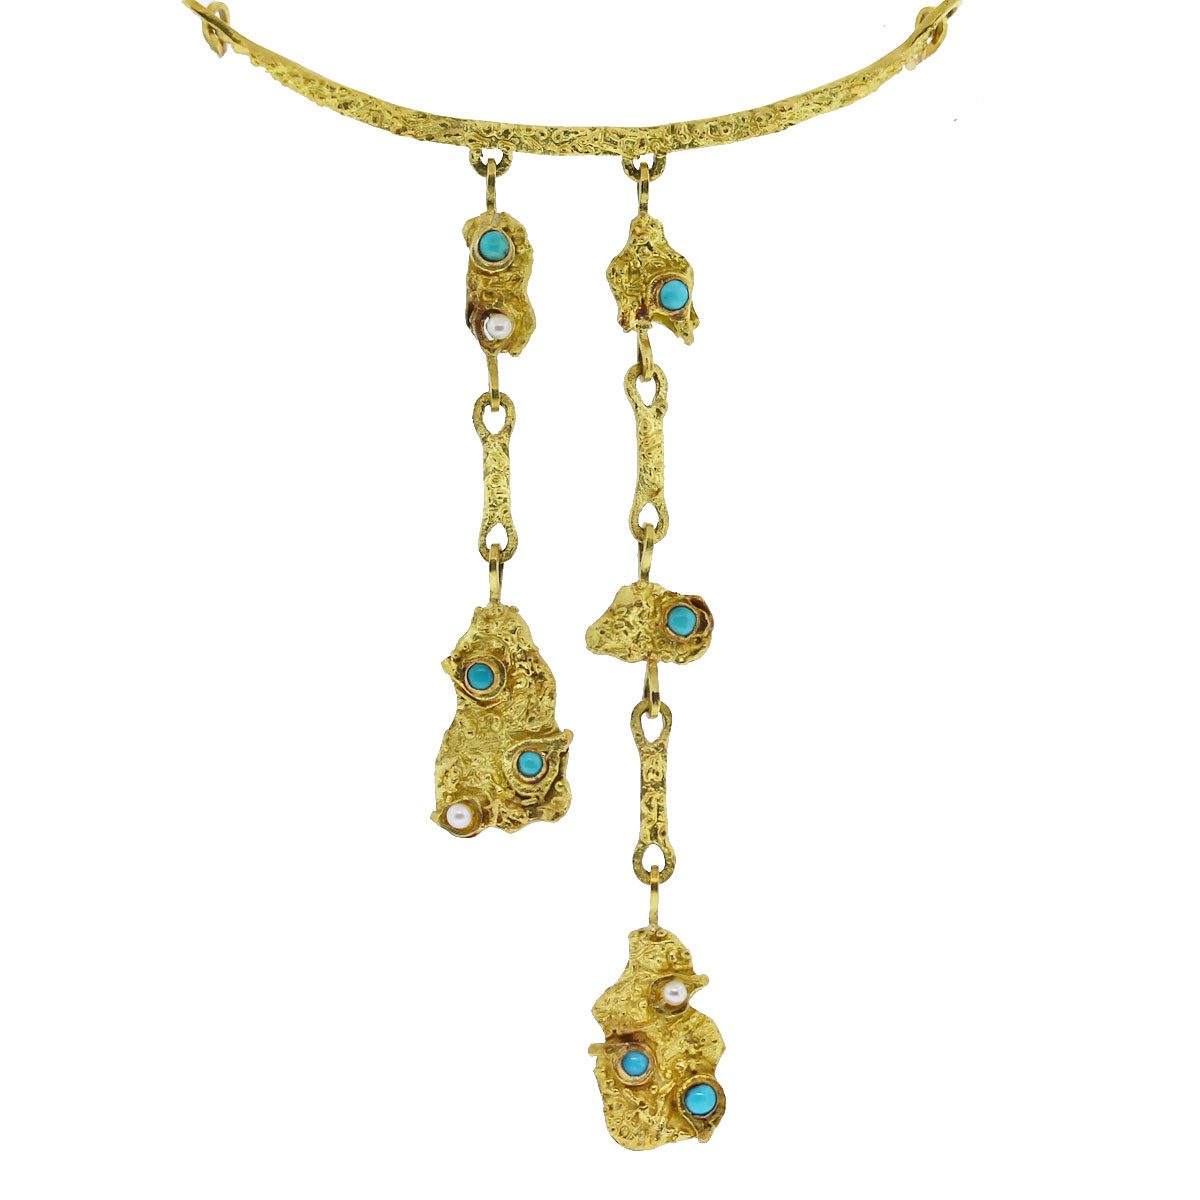 18kt Yellow Gold Turquoise & Pearl Egyptian Style Dangle Necklace